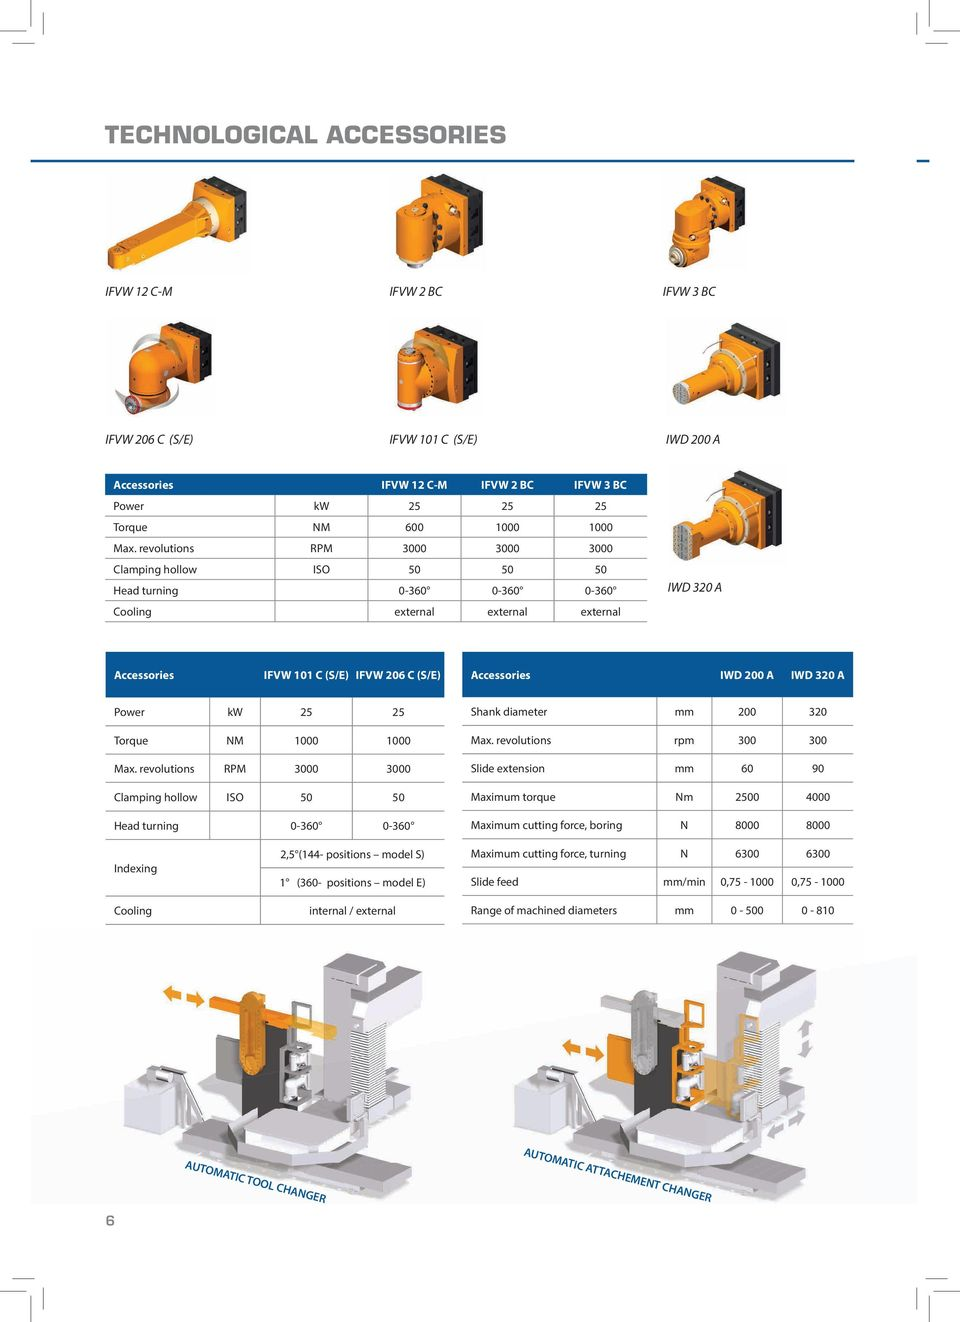 200 A IWD 320 A Power kw 25 25 Torque NM 1000 1000 Max. revolutions RPM 3000 3000 Clamping hollow ISO 50 50 Head turning 0-360 0-360 Shank diameter mm 200 320 Max.